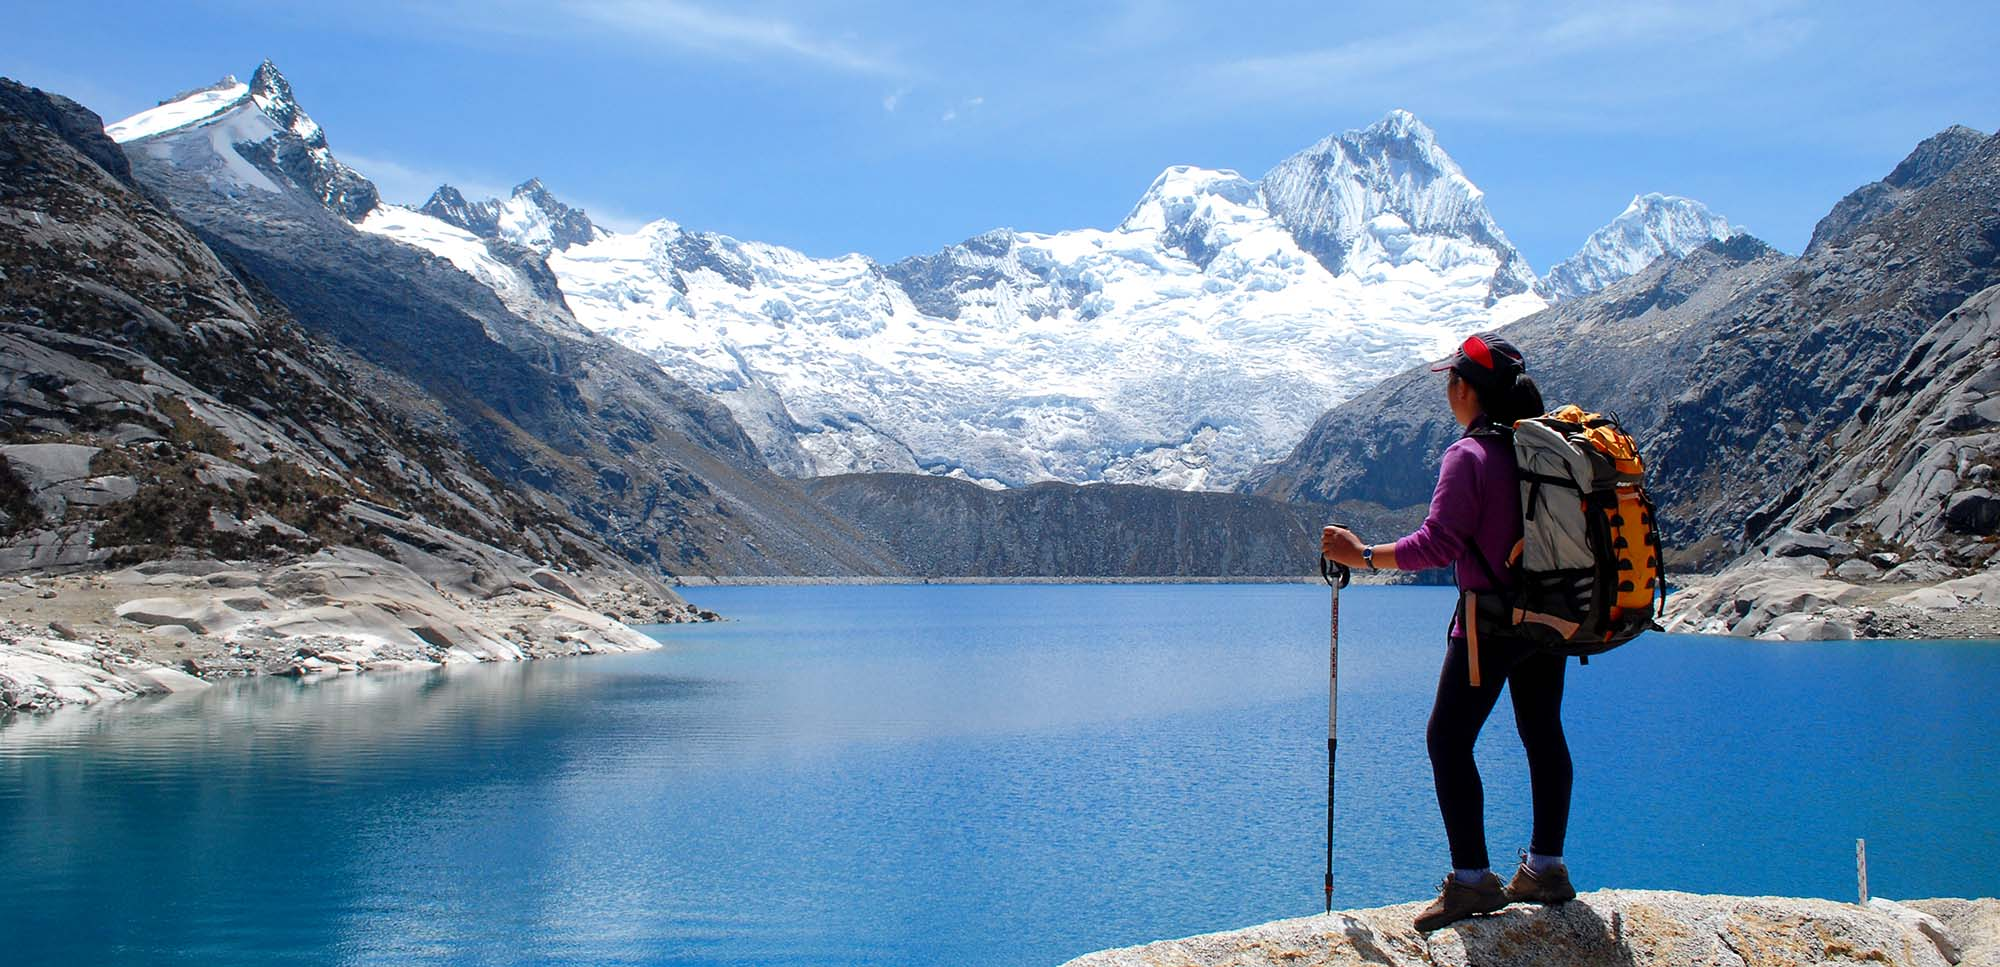 Peru, treks, climbs, hiking, - Cullicocha  Lake  (4500m)  –  Alpamayo  Circuit  Trek